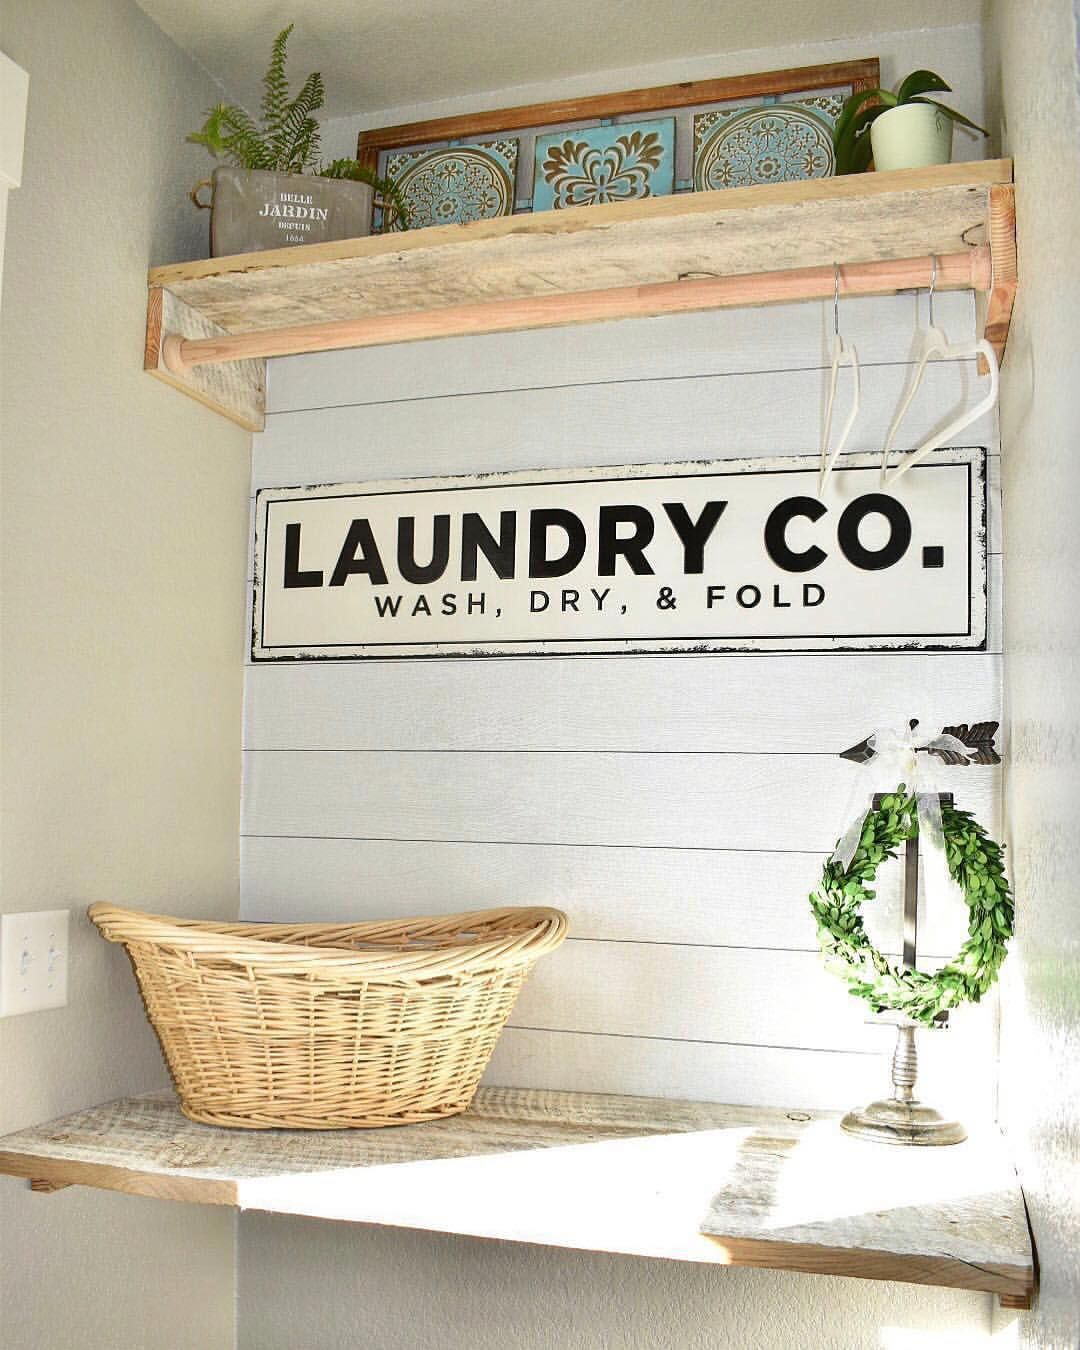 1 755 Likes 15 Comments Kirkland S Kirklands On Instagram Babbfarmlife Gave Her Laundry Room A Facelift With Ou Laundry Room Faux Shiplap Wall Plaques